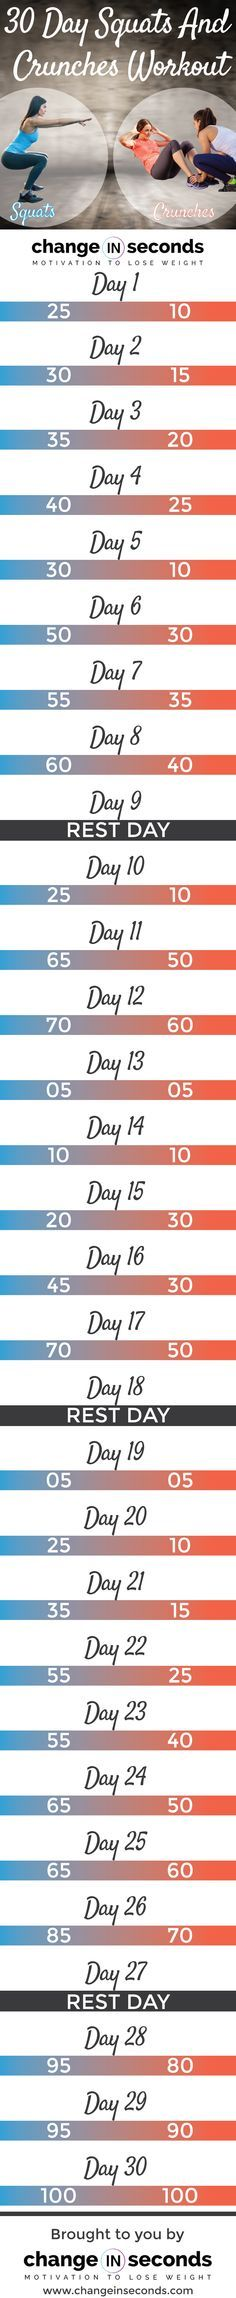 List of exercises: Day 1 25 Squats 10 Crunches Day 2 30 Squats 15 Crunches Day 3 35 Squats 20 Crunches Day 4 40 Squats 25 Crunches Day 5 30 Squats 10